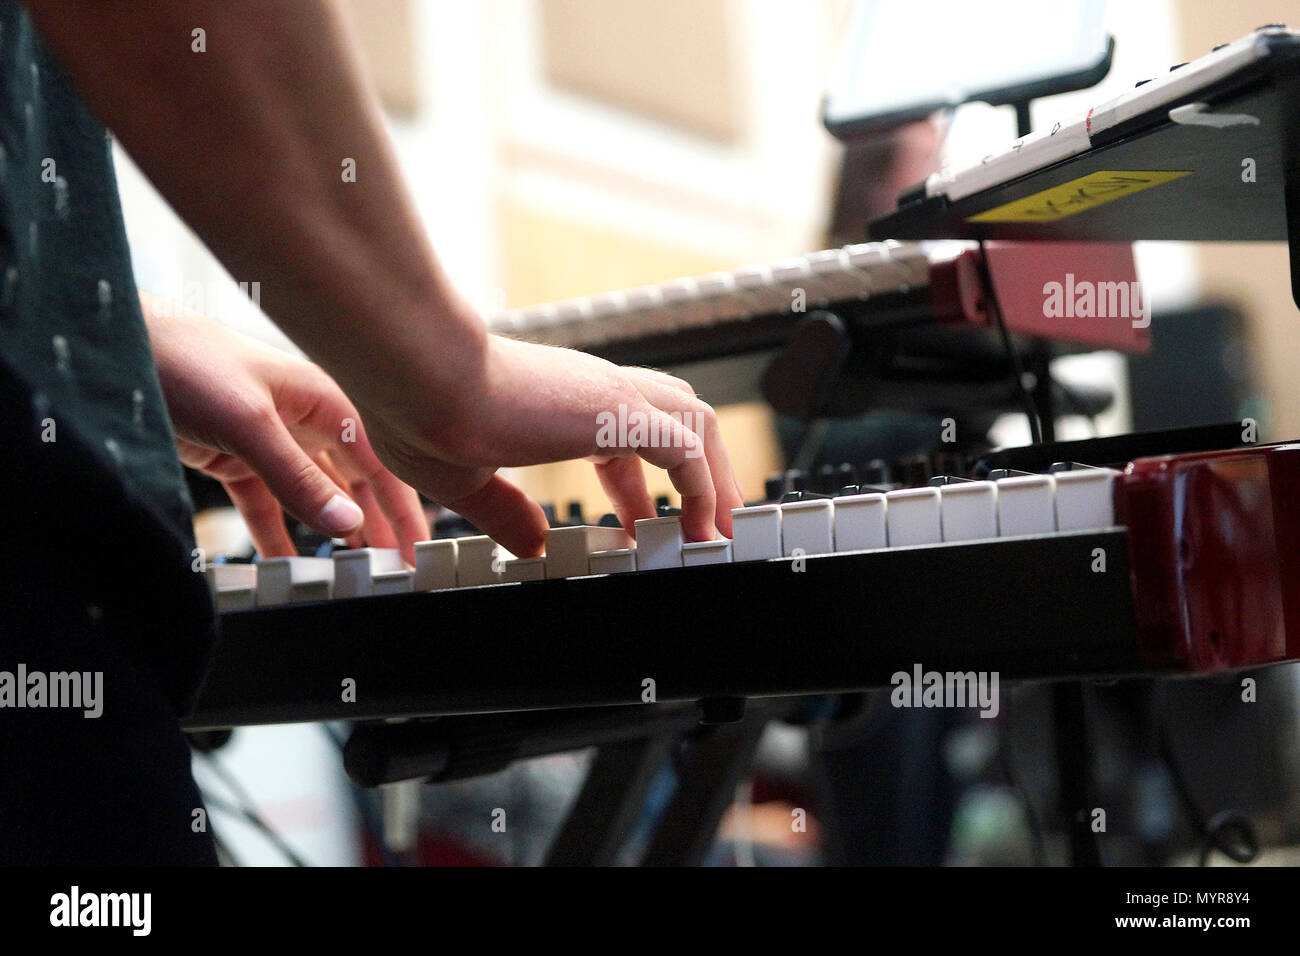 Montreal,Canada,6 Juin,2018.Close-up of a musician hands on synthesizer keyboard.Credit:Mario Beauregard/Alamy Live News - Stock Image